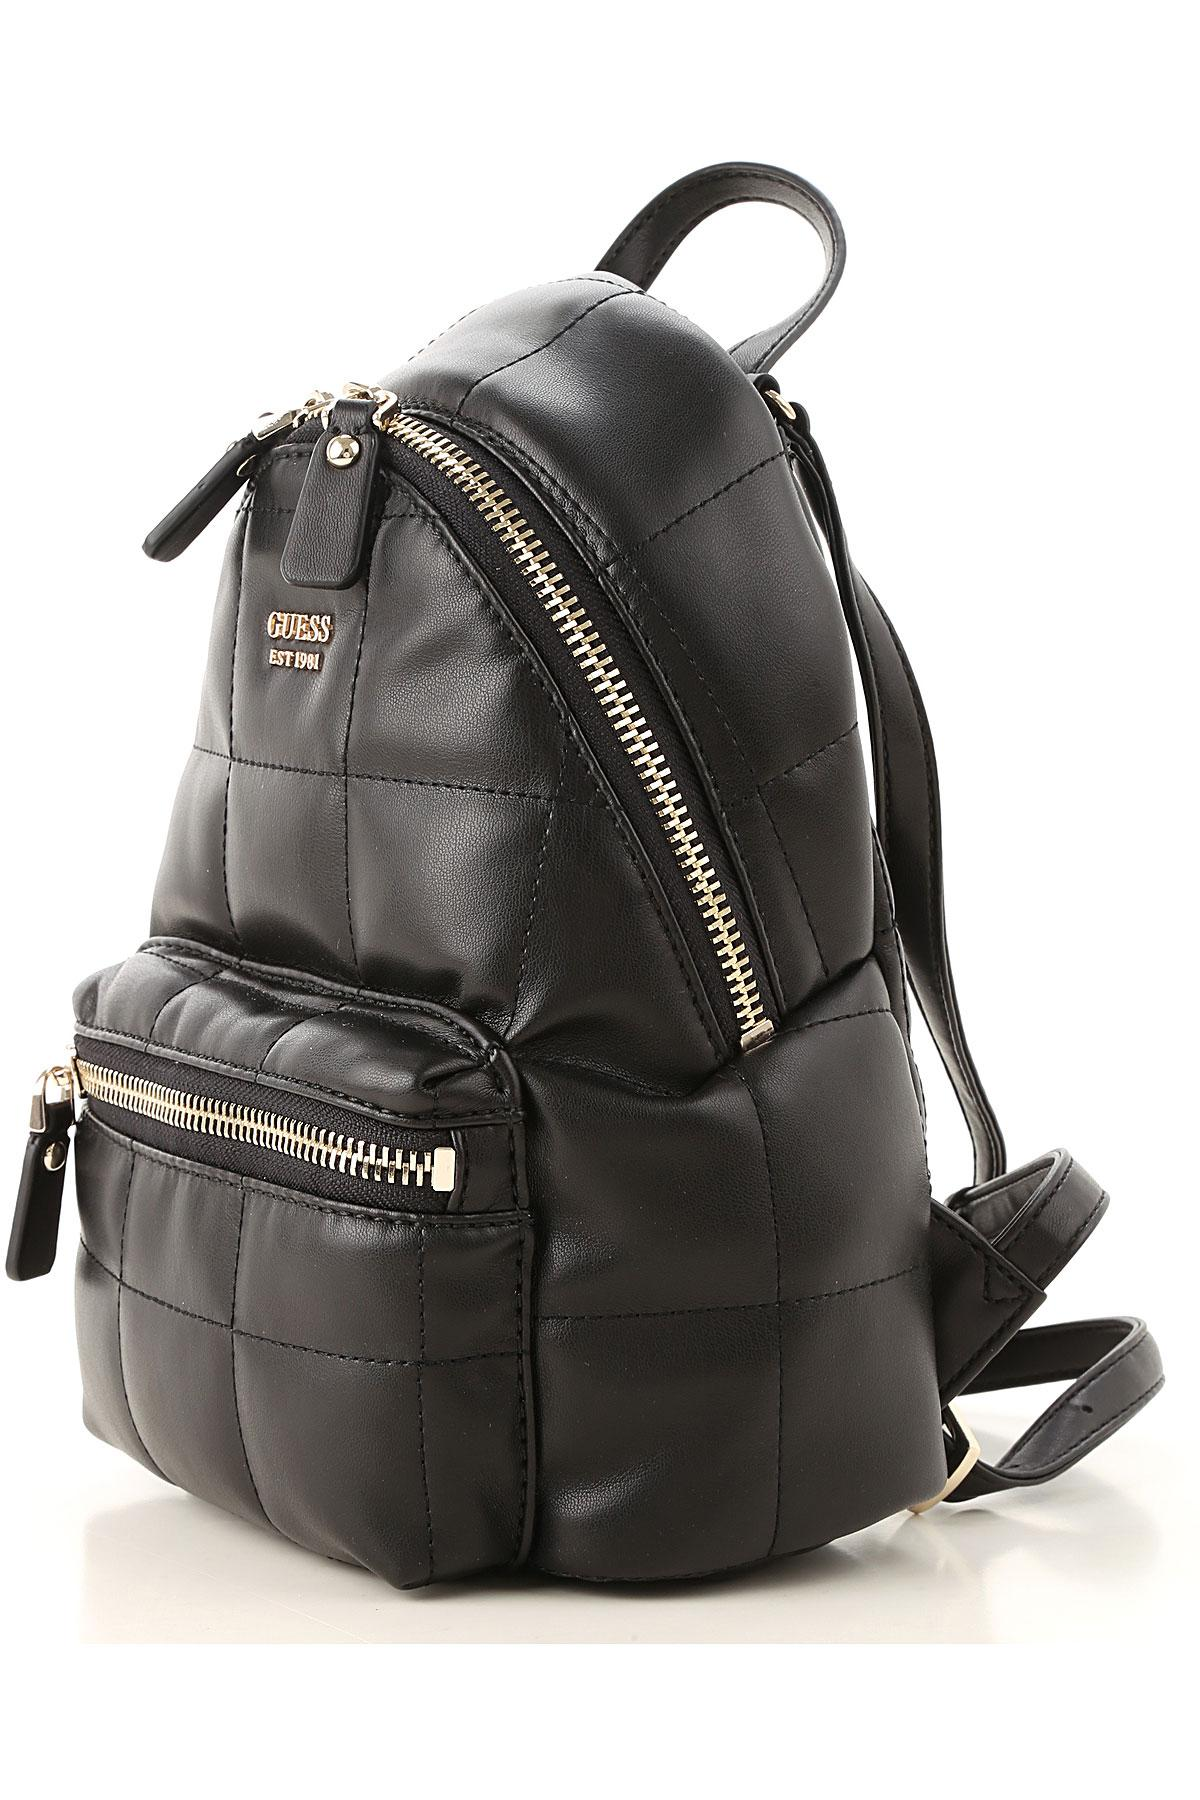 Guess Backpack For Women in Black - Lyst